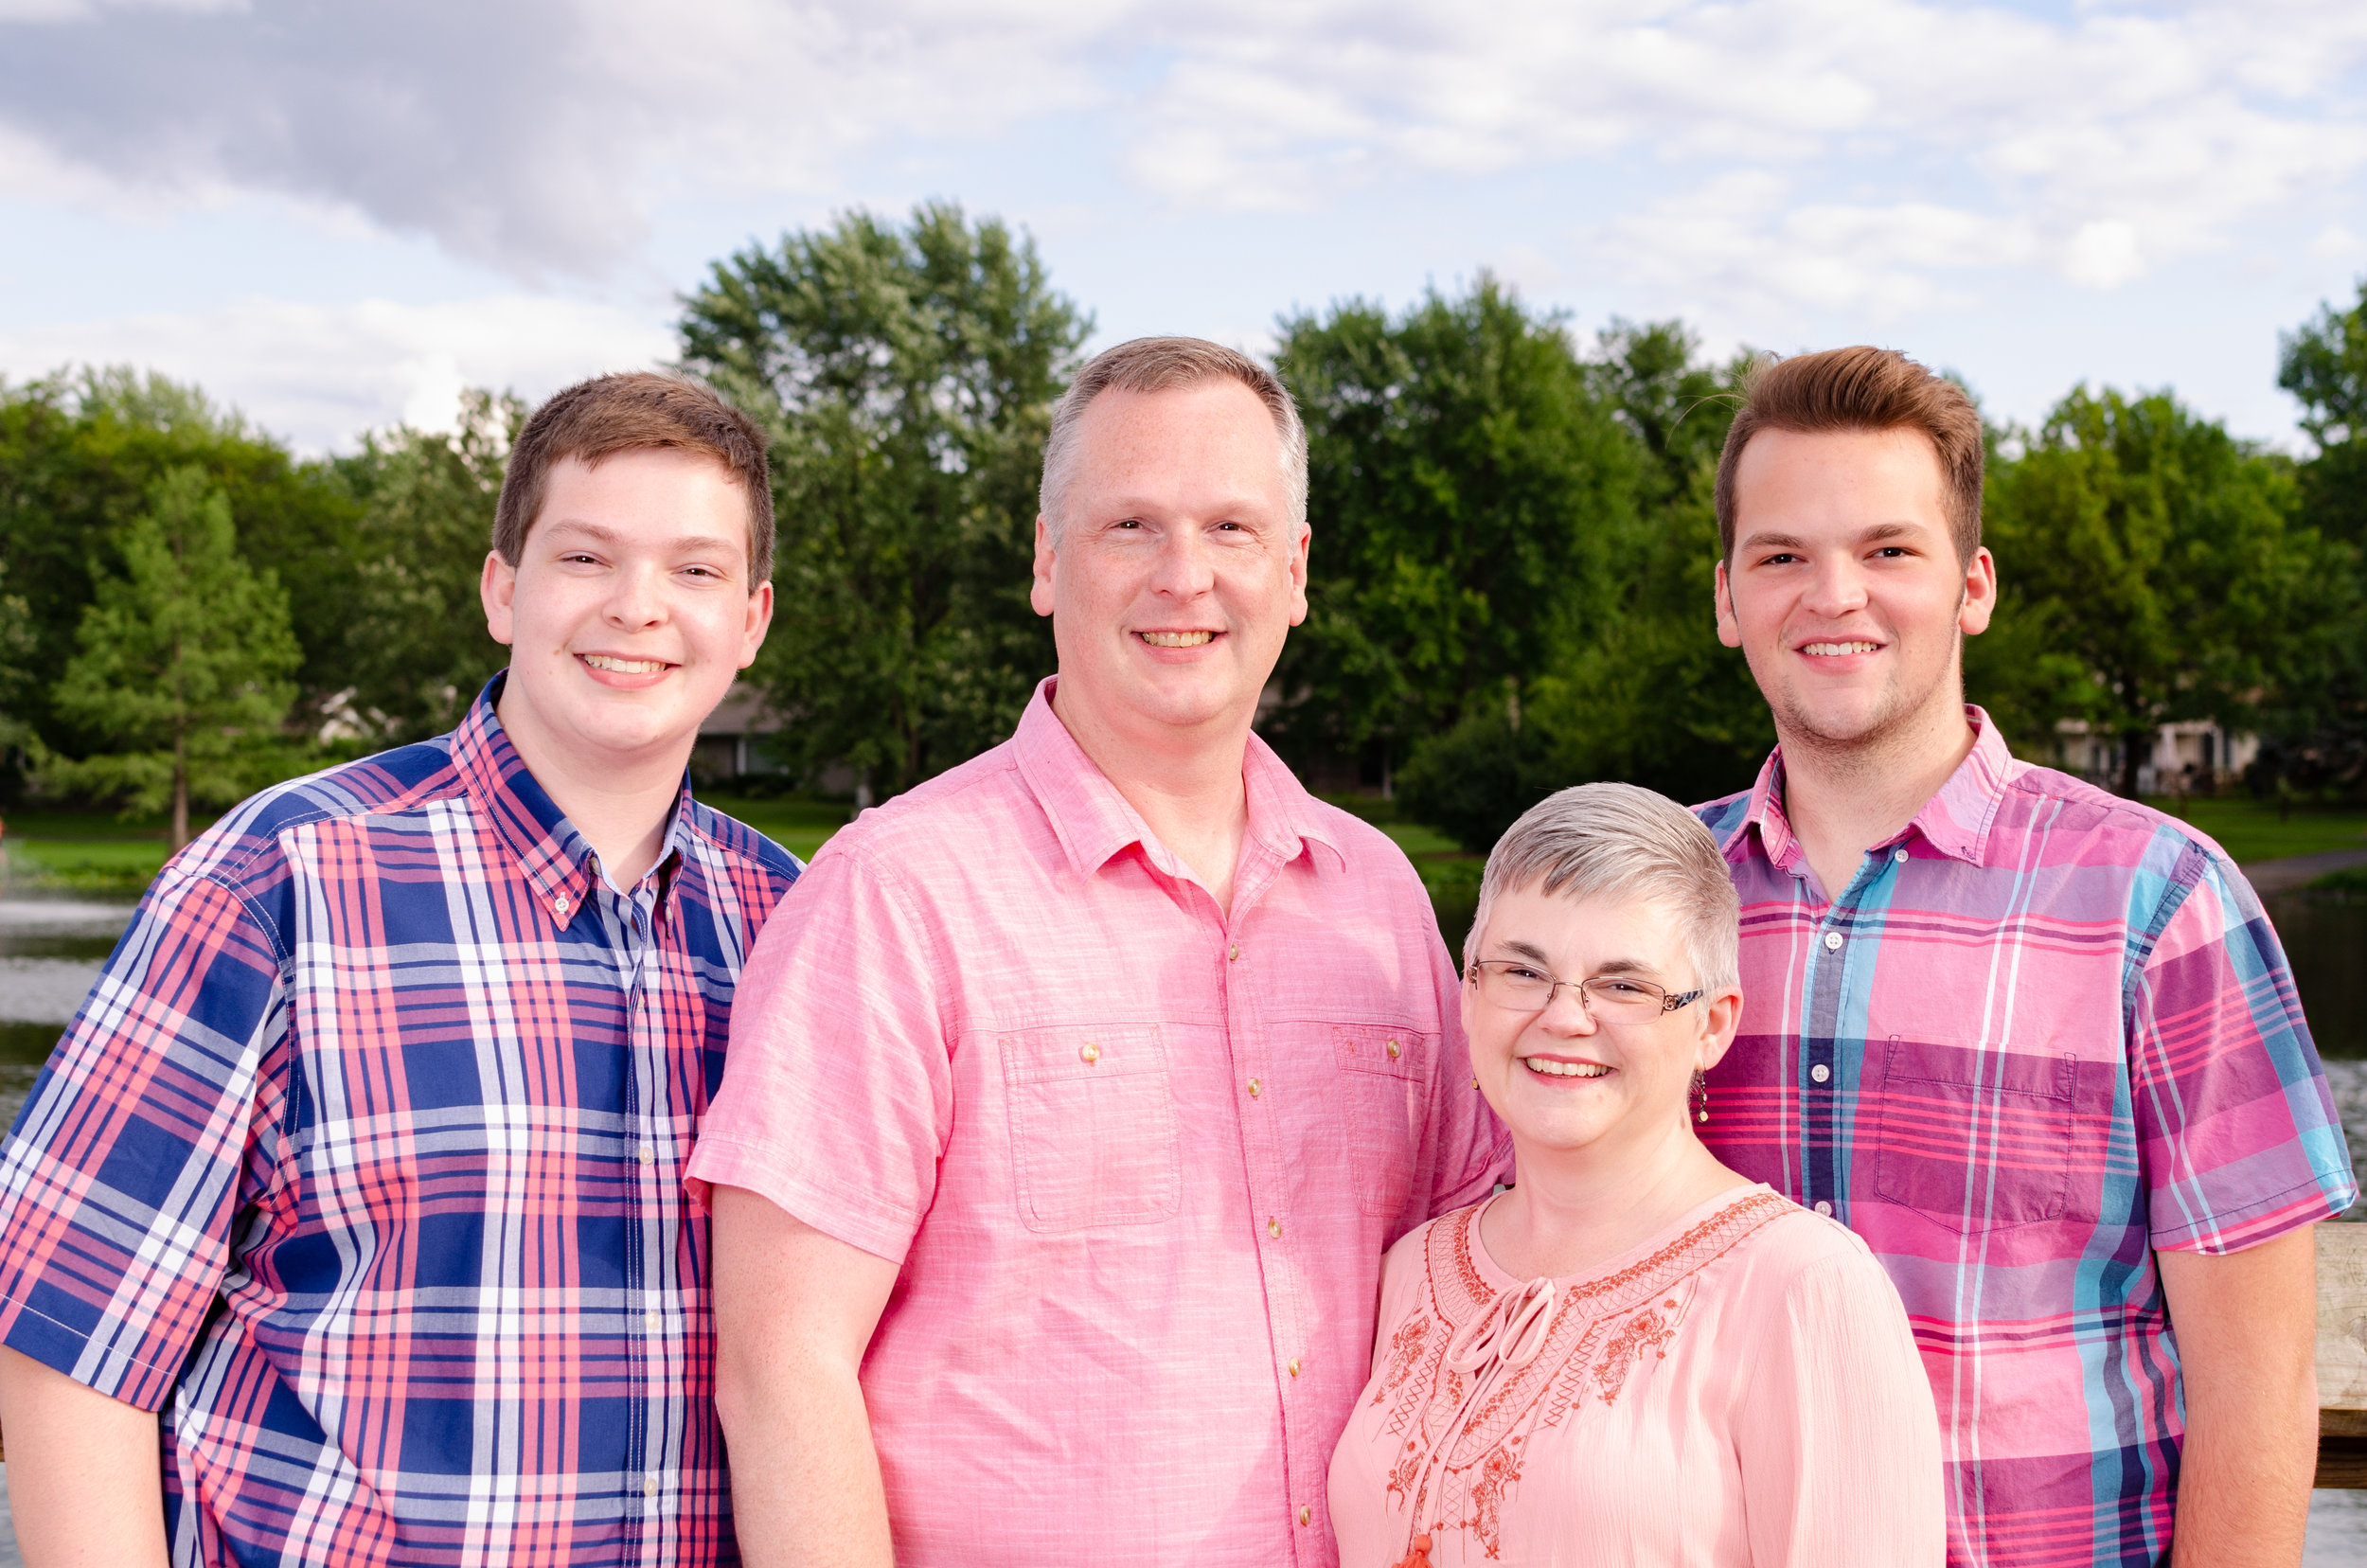 Wallace Family Portraits 2018-7.jpg